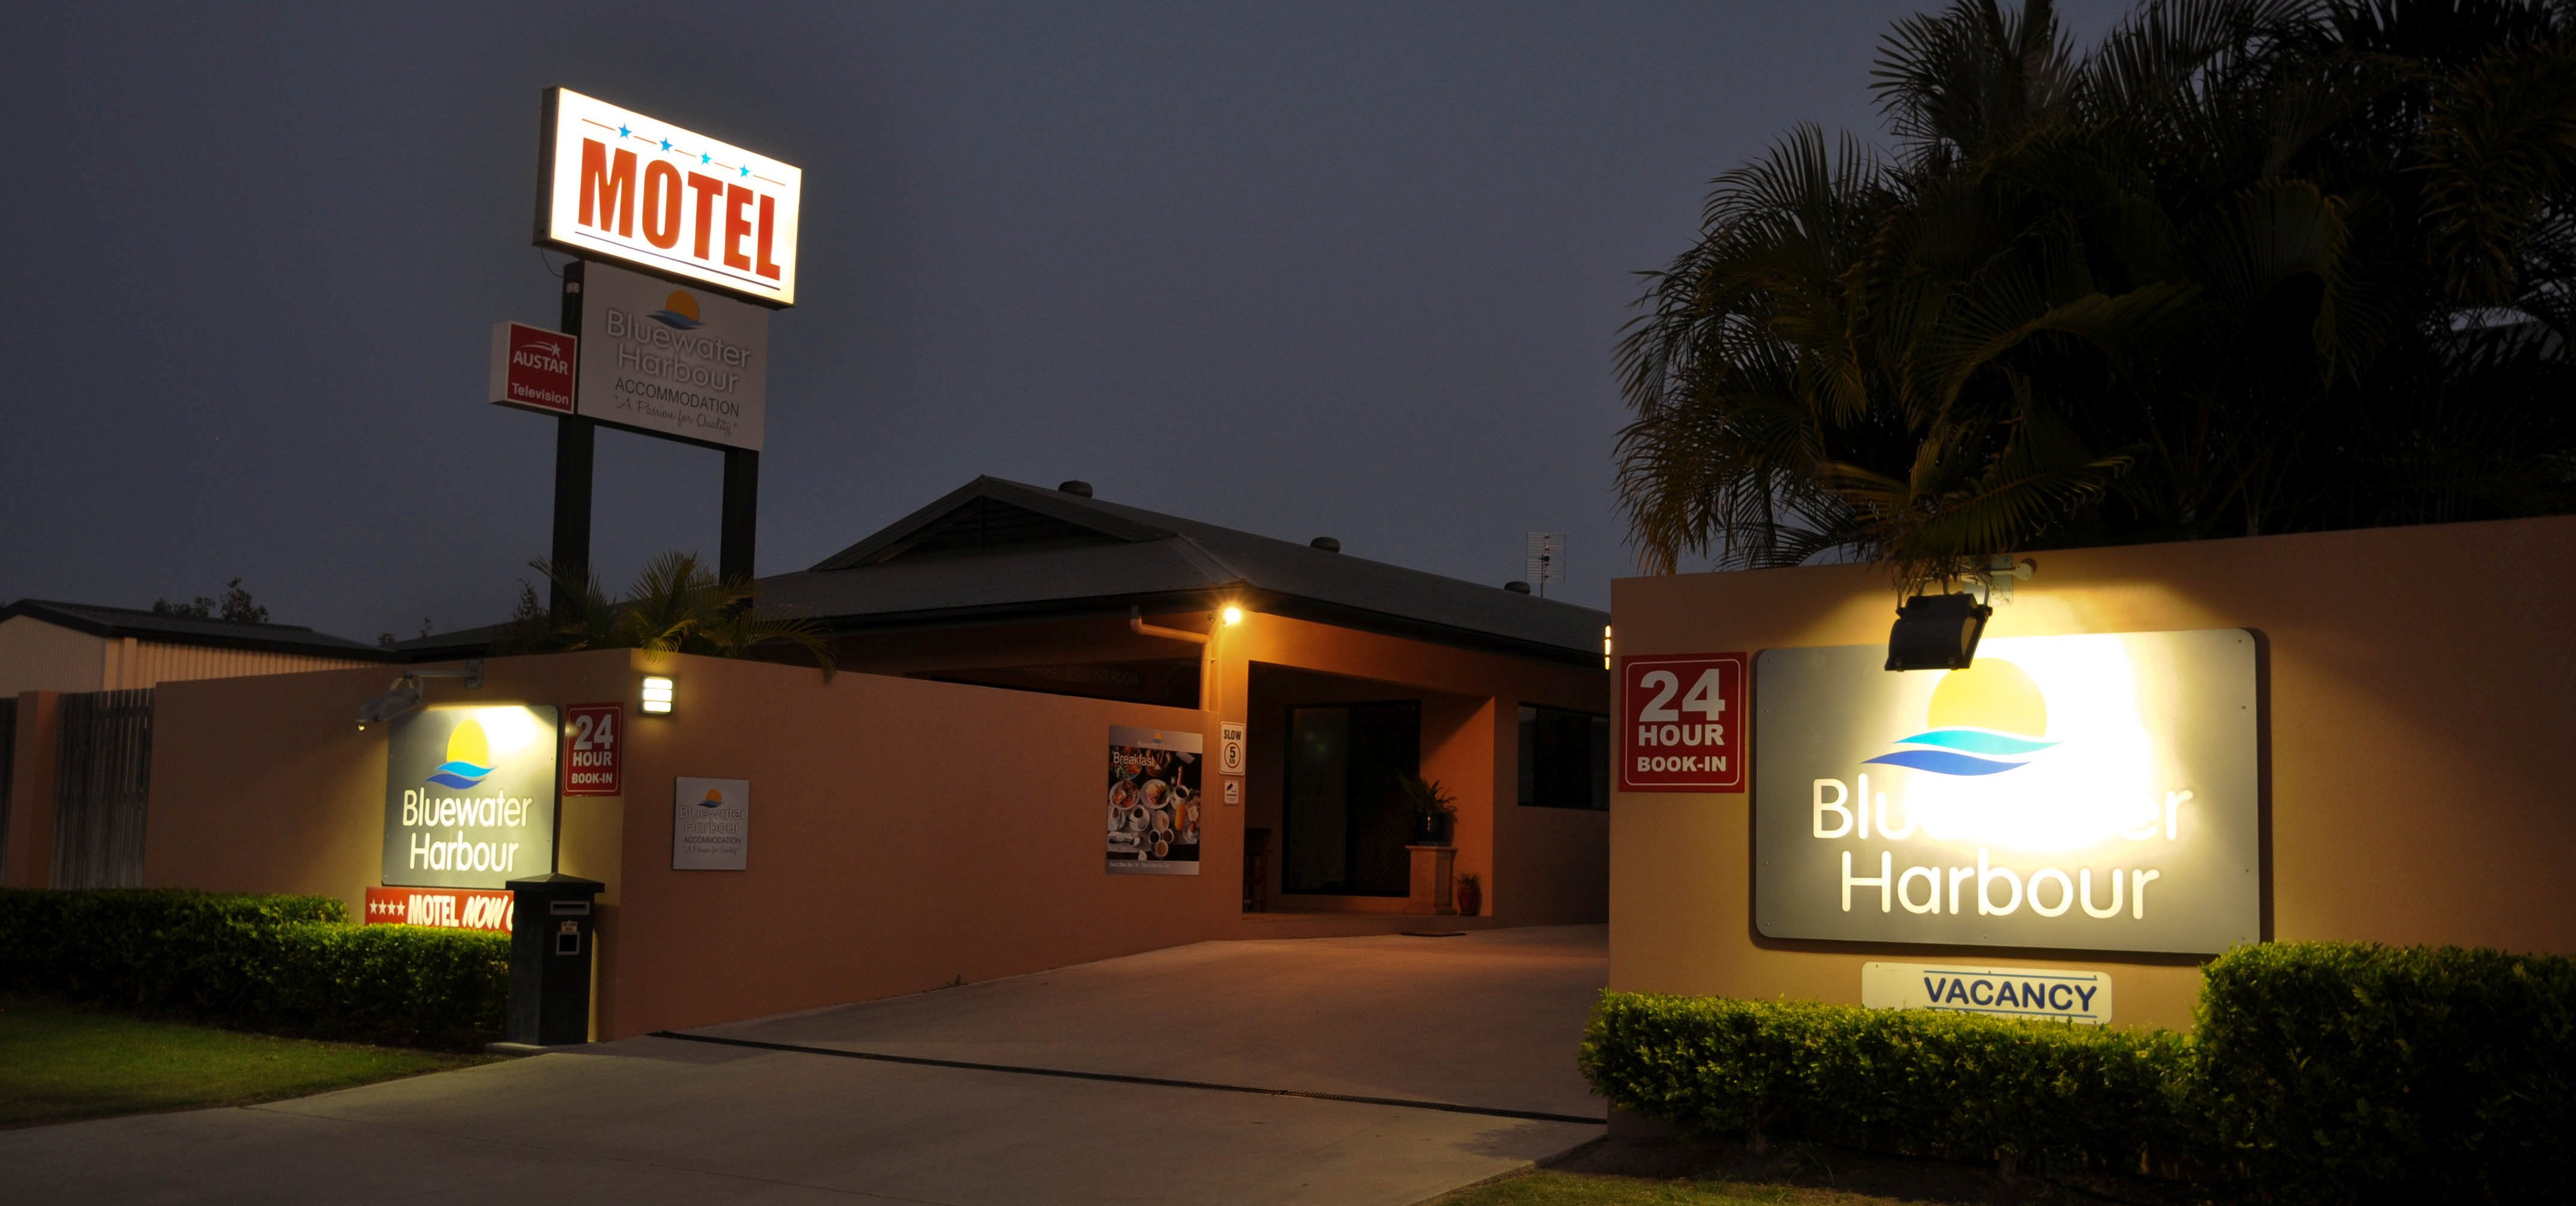 Bluewater Harbour Motel situated in the CBD of Bowen ****